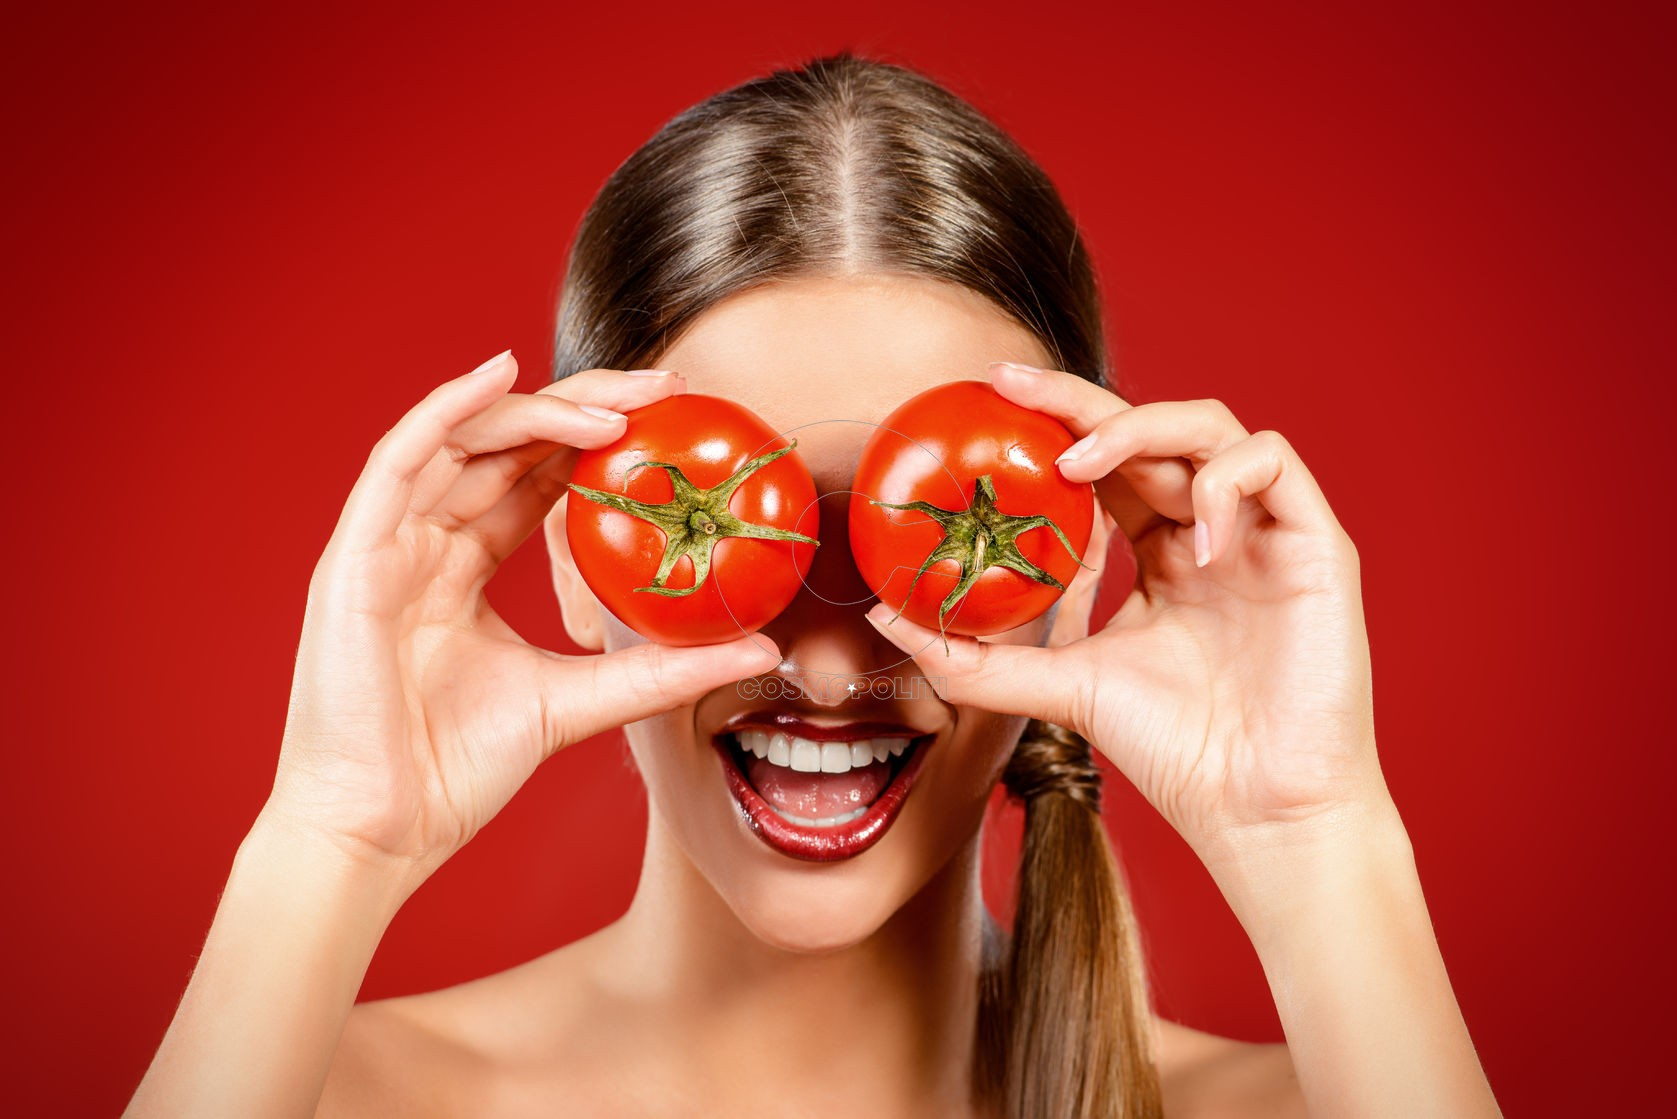 44127357 - beautiful laughing woman holding two ripe tomatoes before her eyes. red background. healthy eating concept. diet.